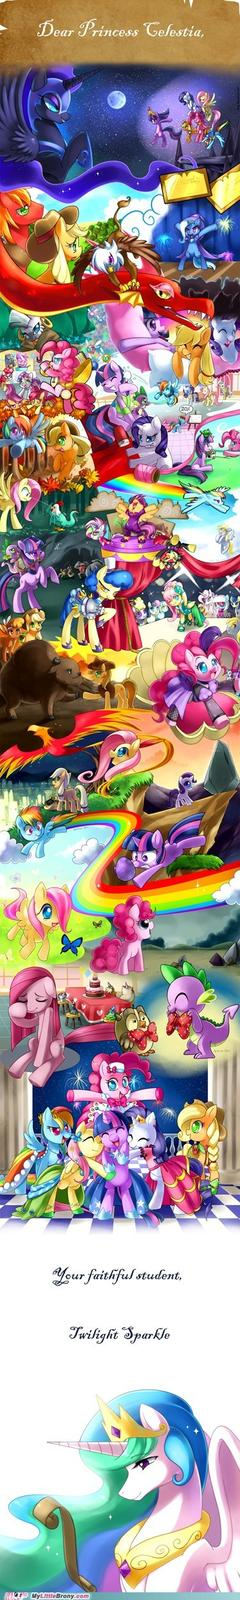 my-little-pony-friendship-is-magic-brony-a-well-learned-lesson.jpg